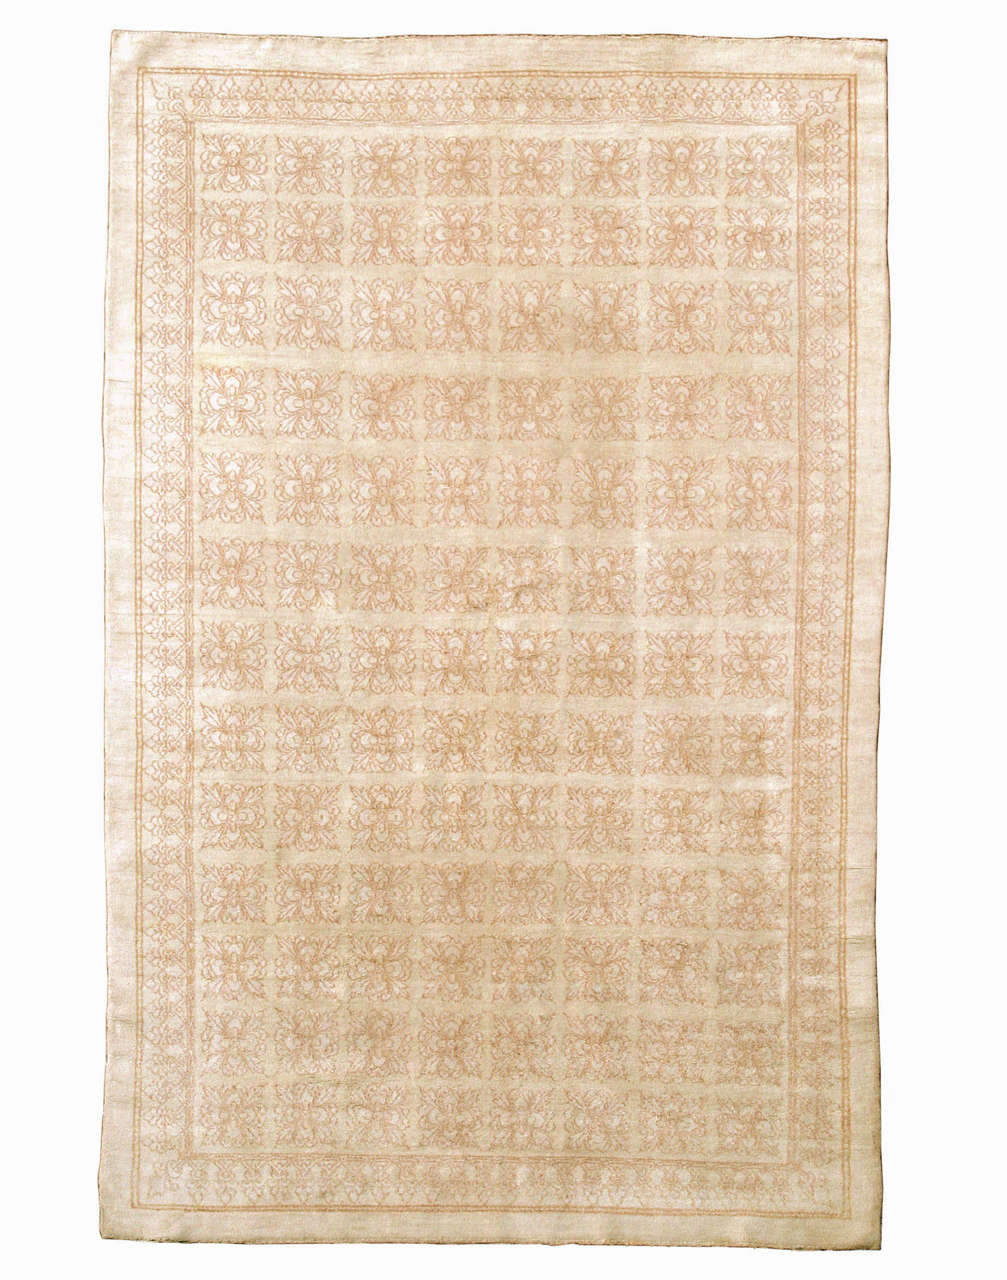 19th Century Antique Cotton Agra Rug with Tile Pattern For Sale